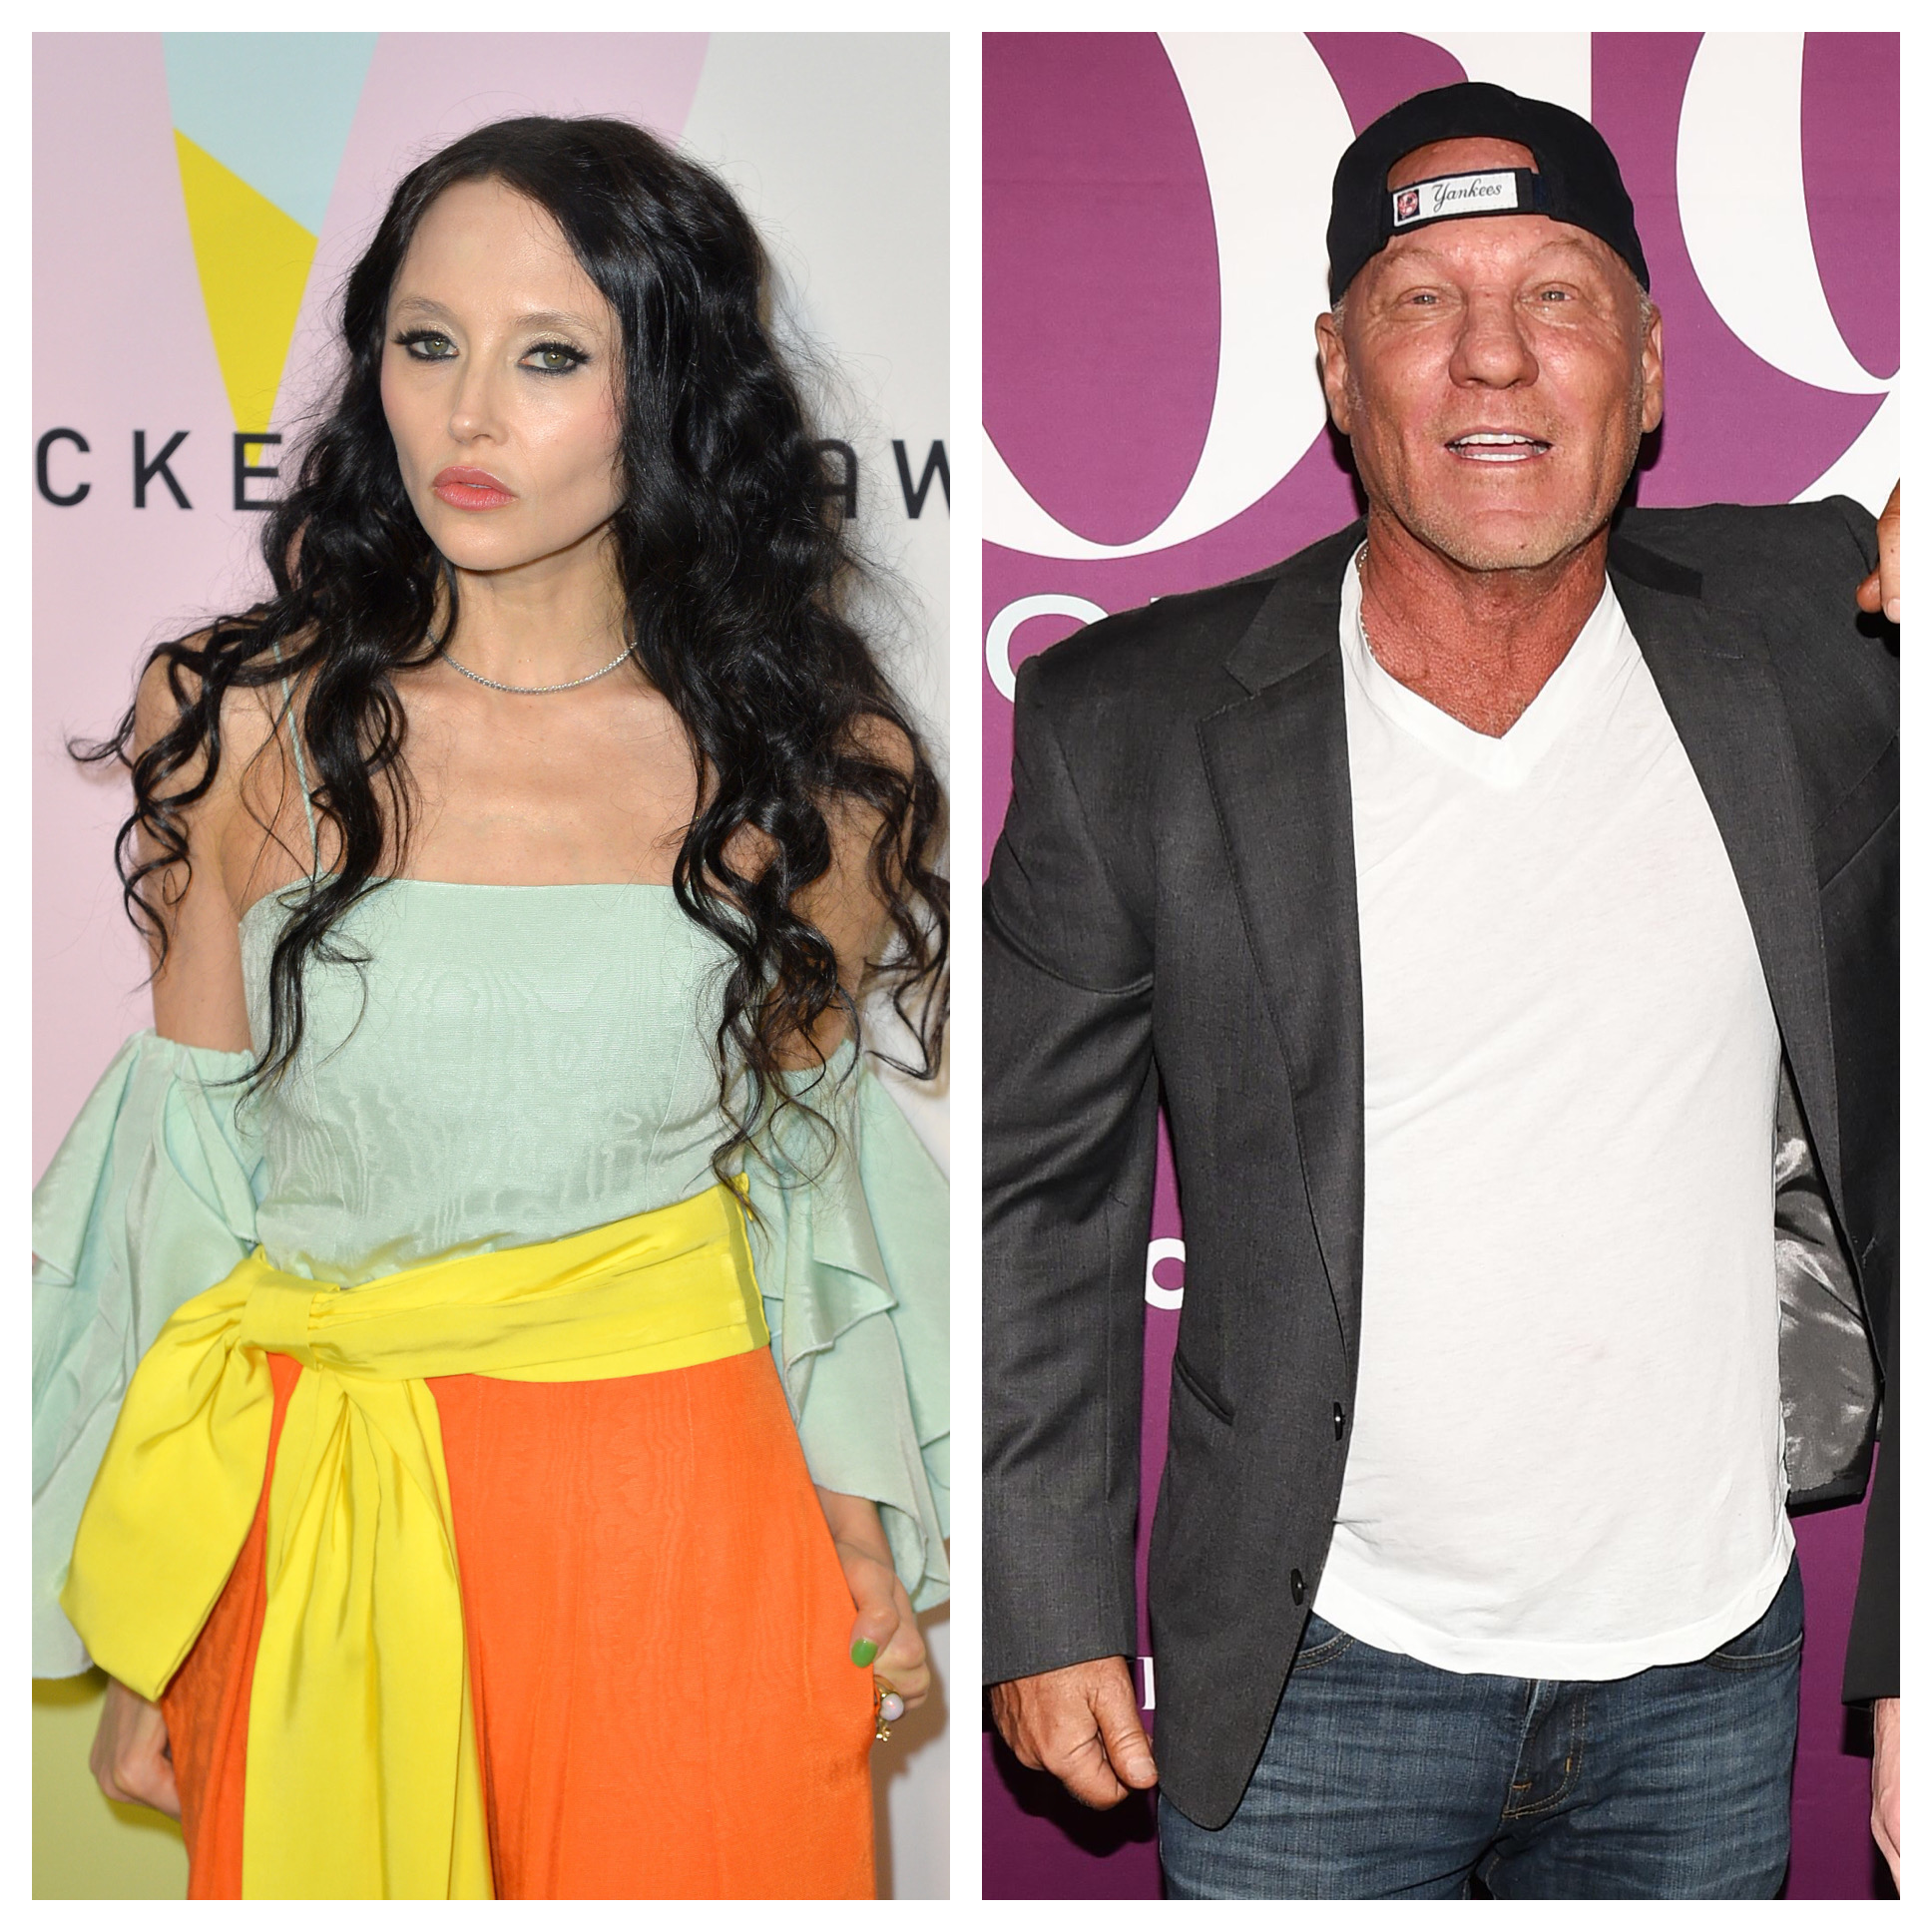 Alice + Olivia's Stacey Bendet Launches Charitable Initiative Amid Viral Steve Madden Feud